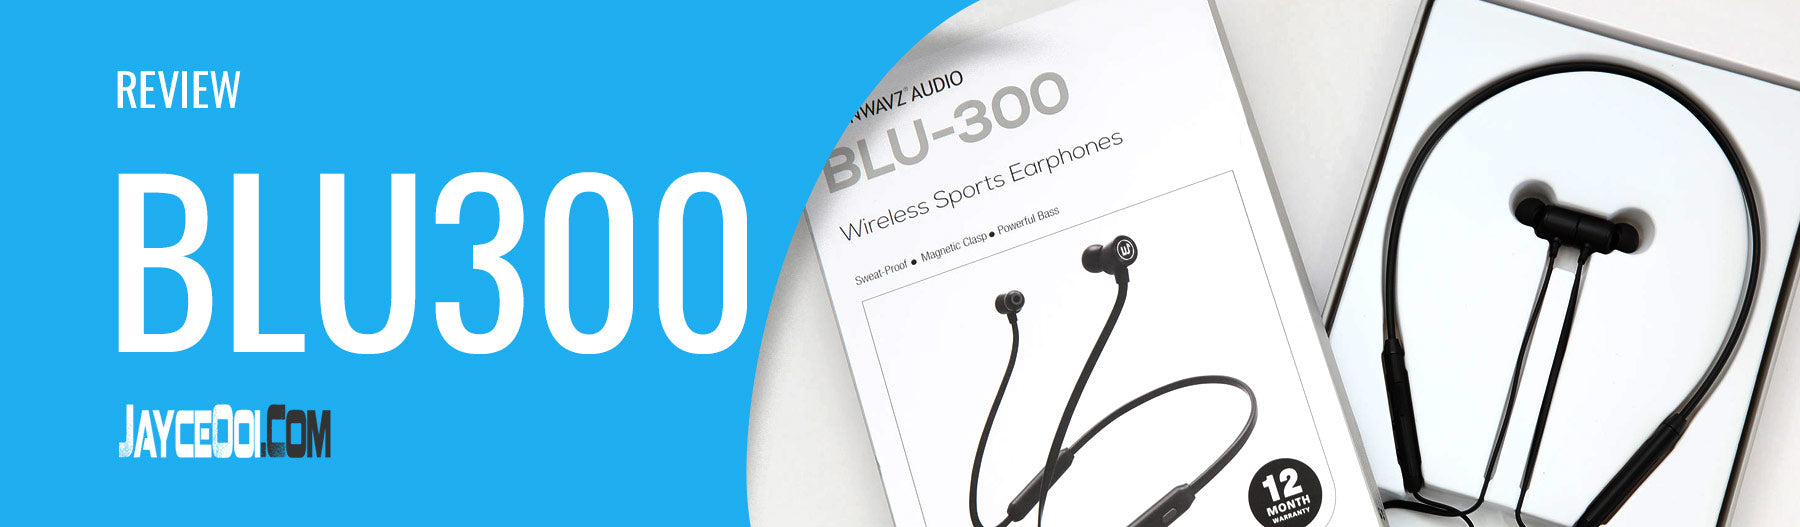 BLU-300 Review - jayceooi.com